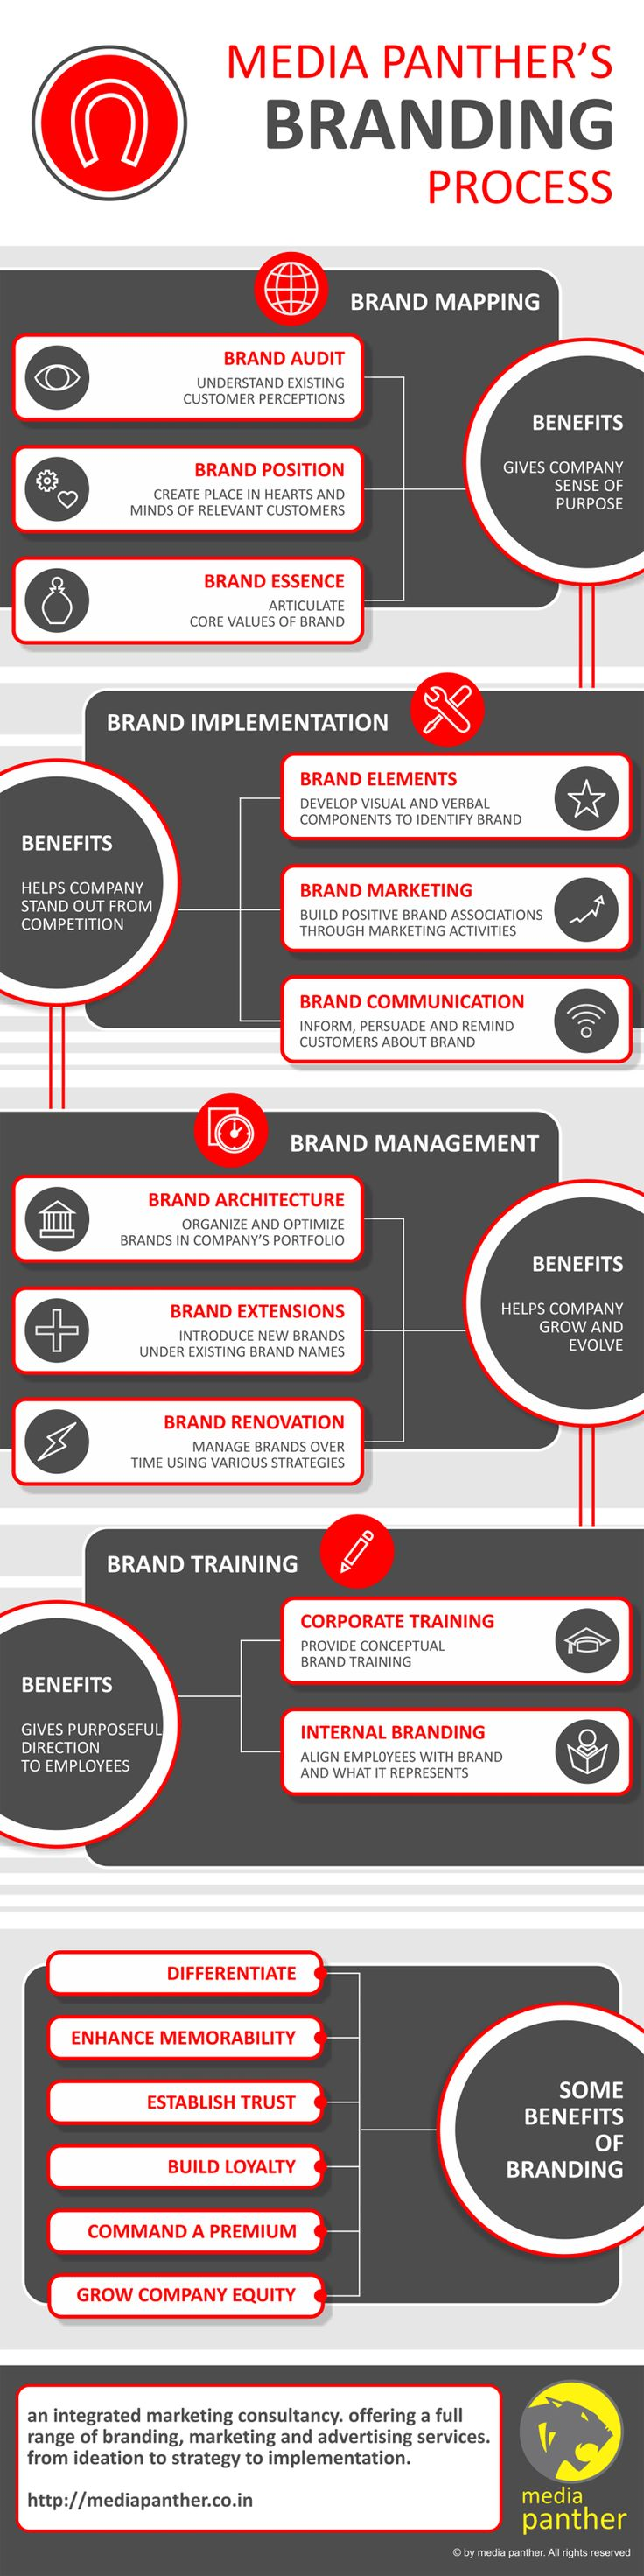 Components of Brand Positioning: Strategy Template with Examples Posted on April 12, 2013 by Brandon Gaille